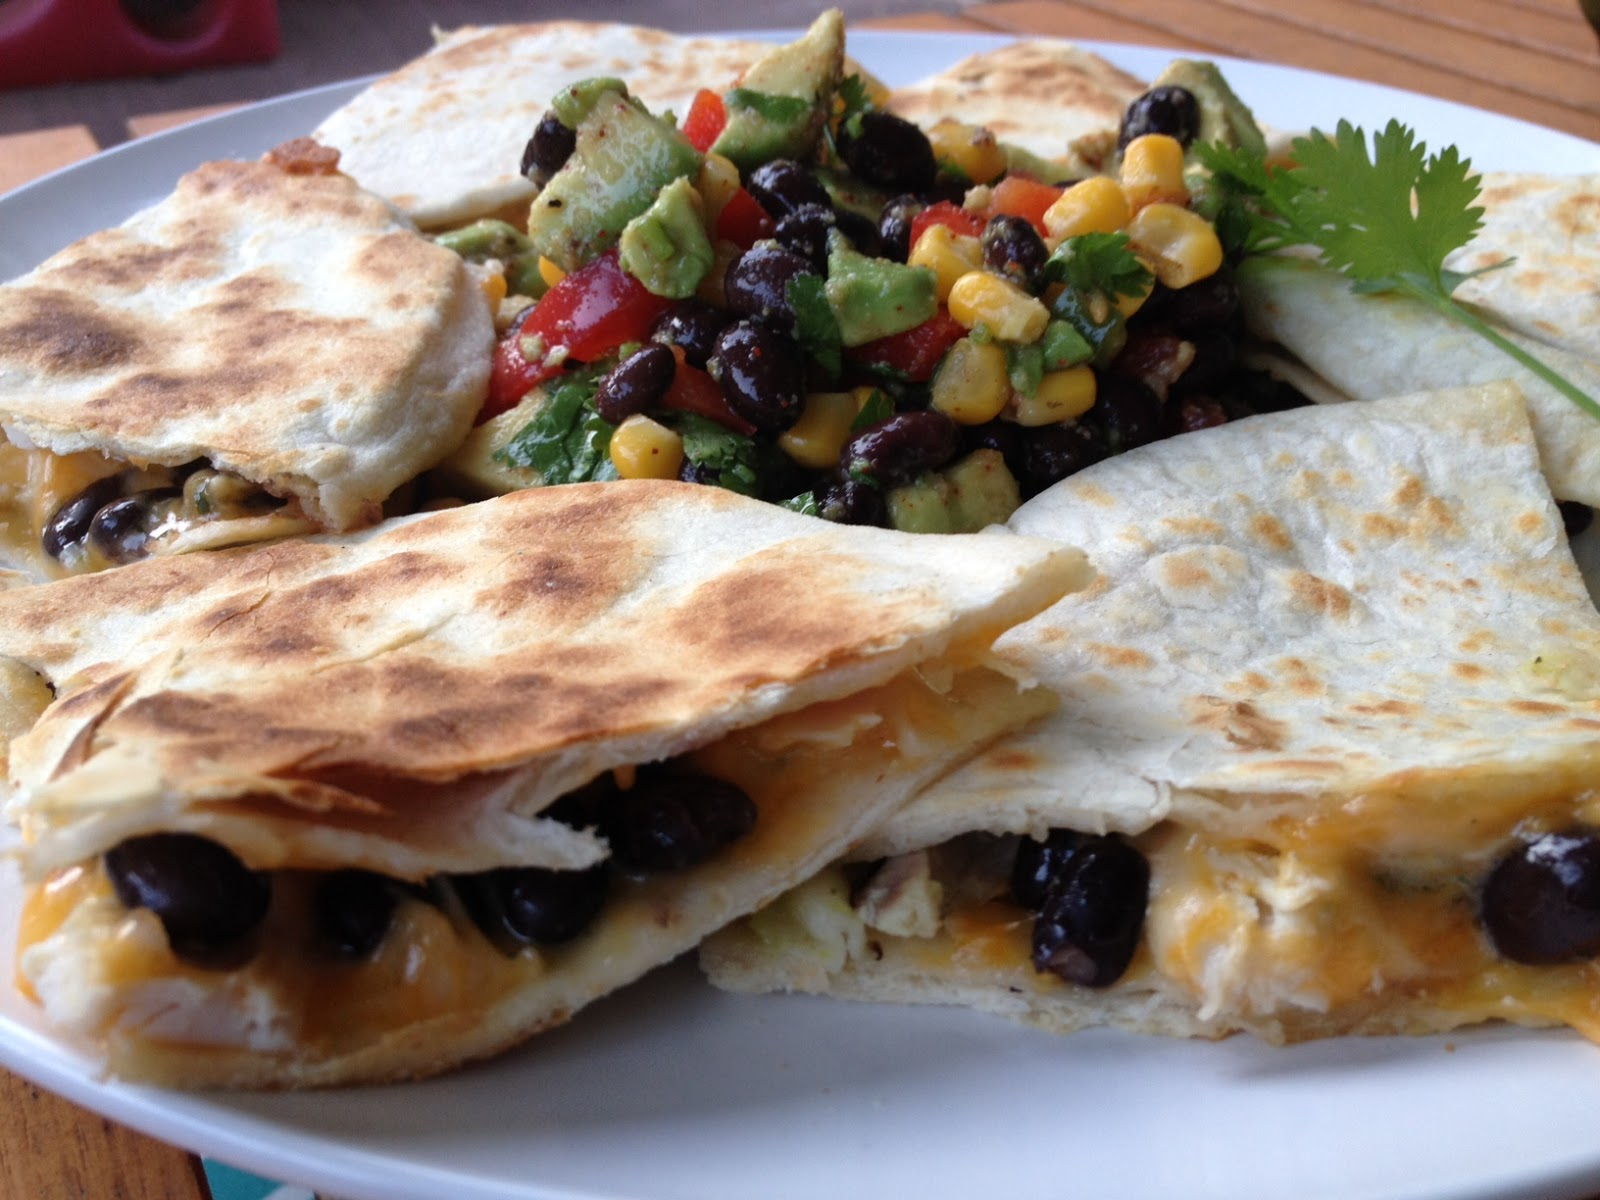 ... black bean and chicken quesadillas with a tomatillo and avocado sauce